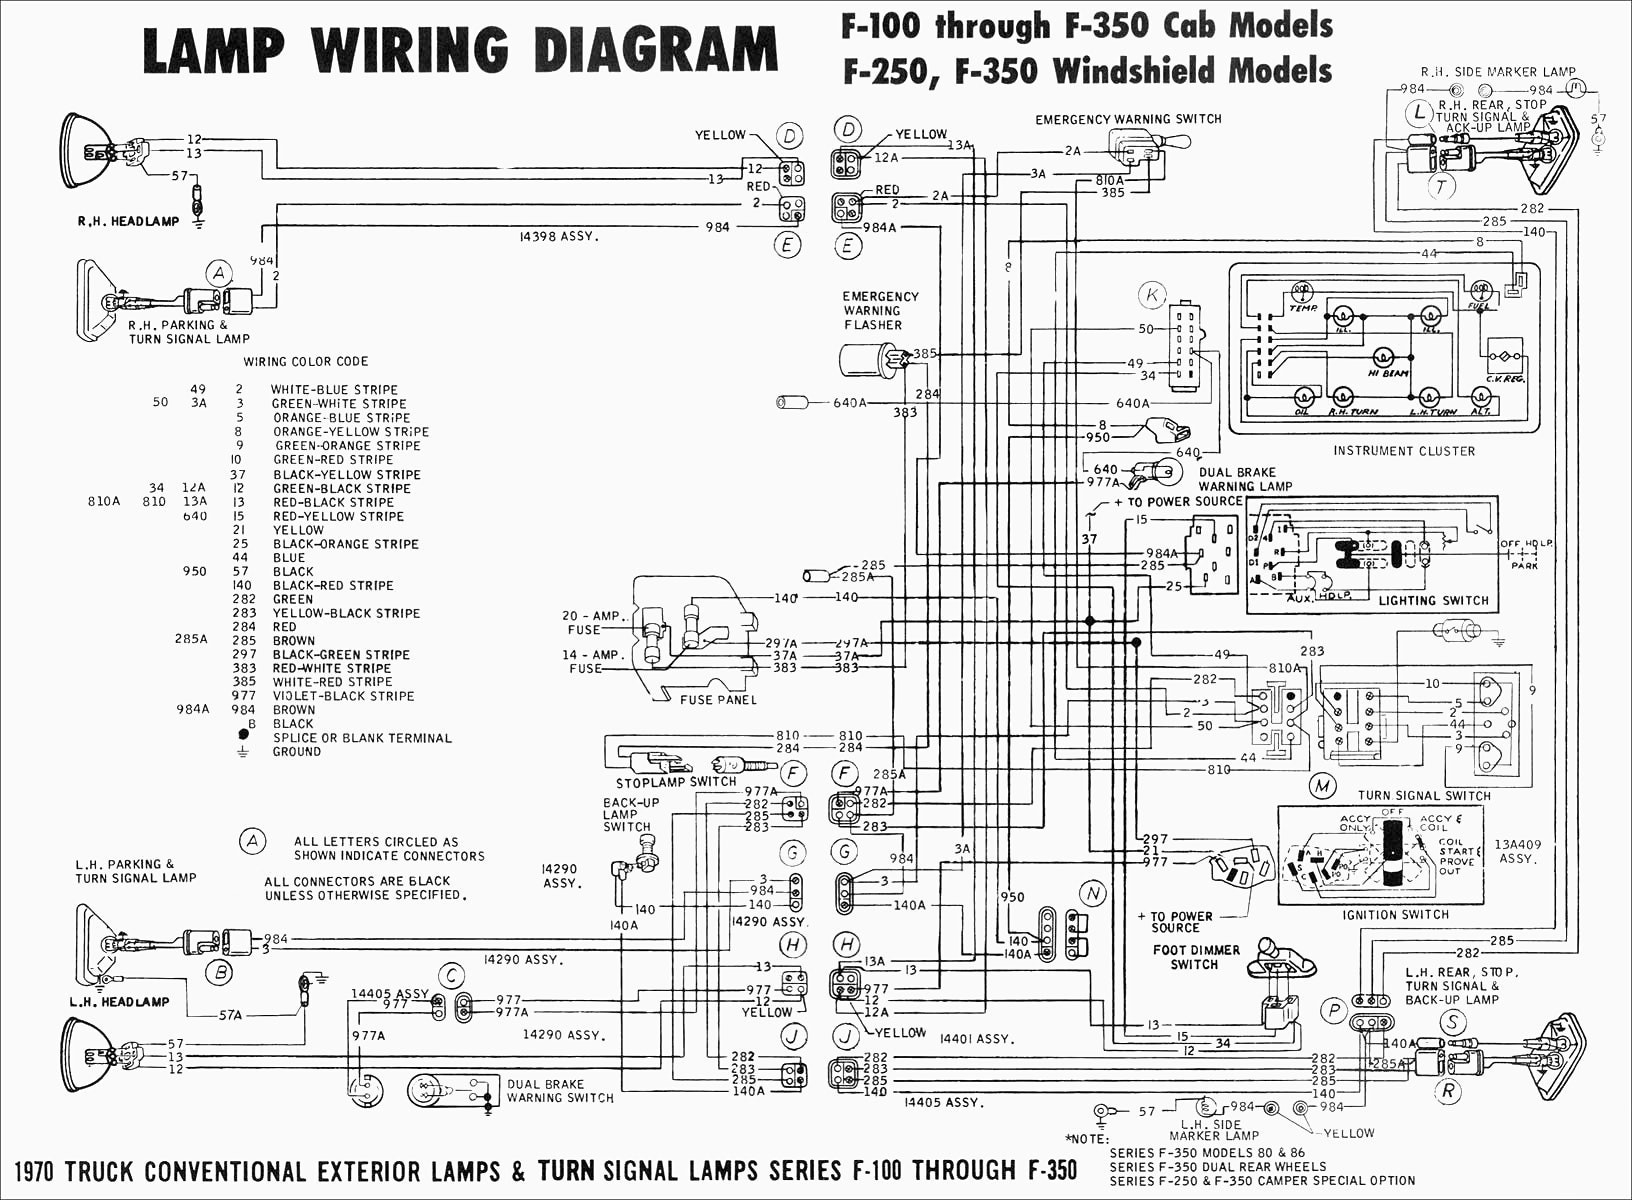 Wiring Diagram for Brake Light Switch Refrence My Brake Lights Dont Work I Changed the Switch